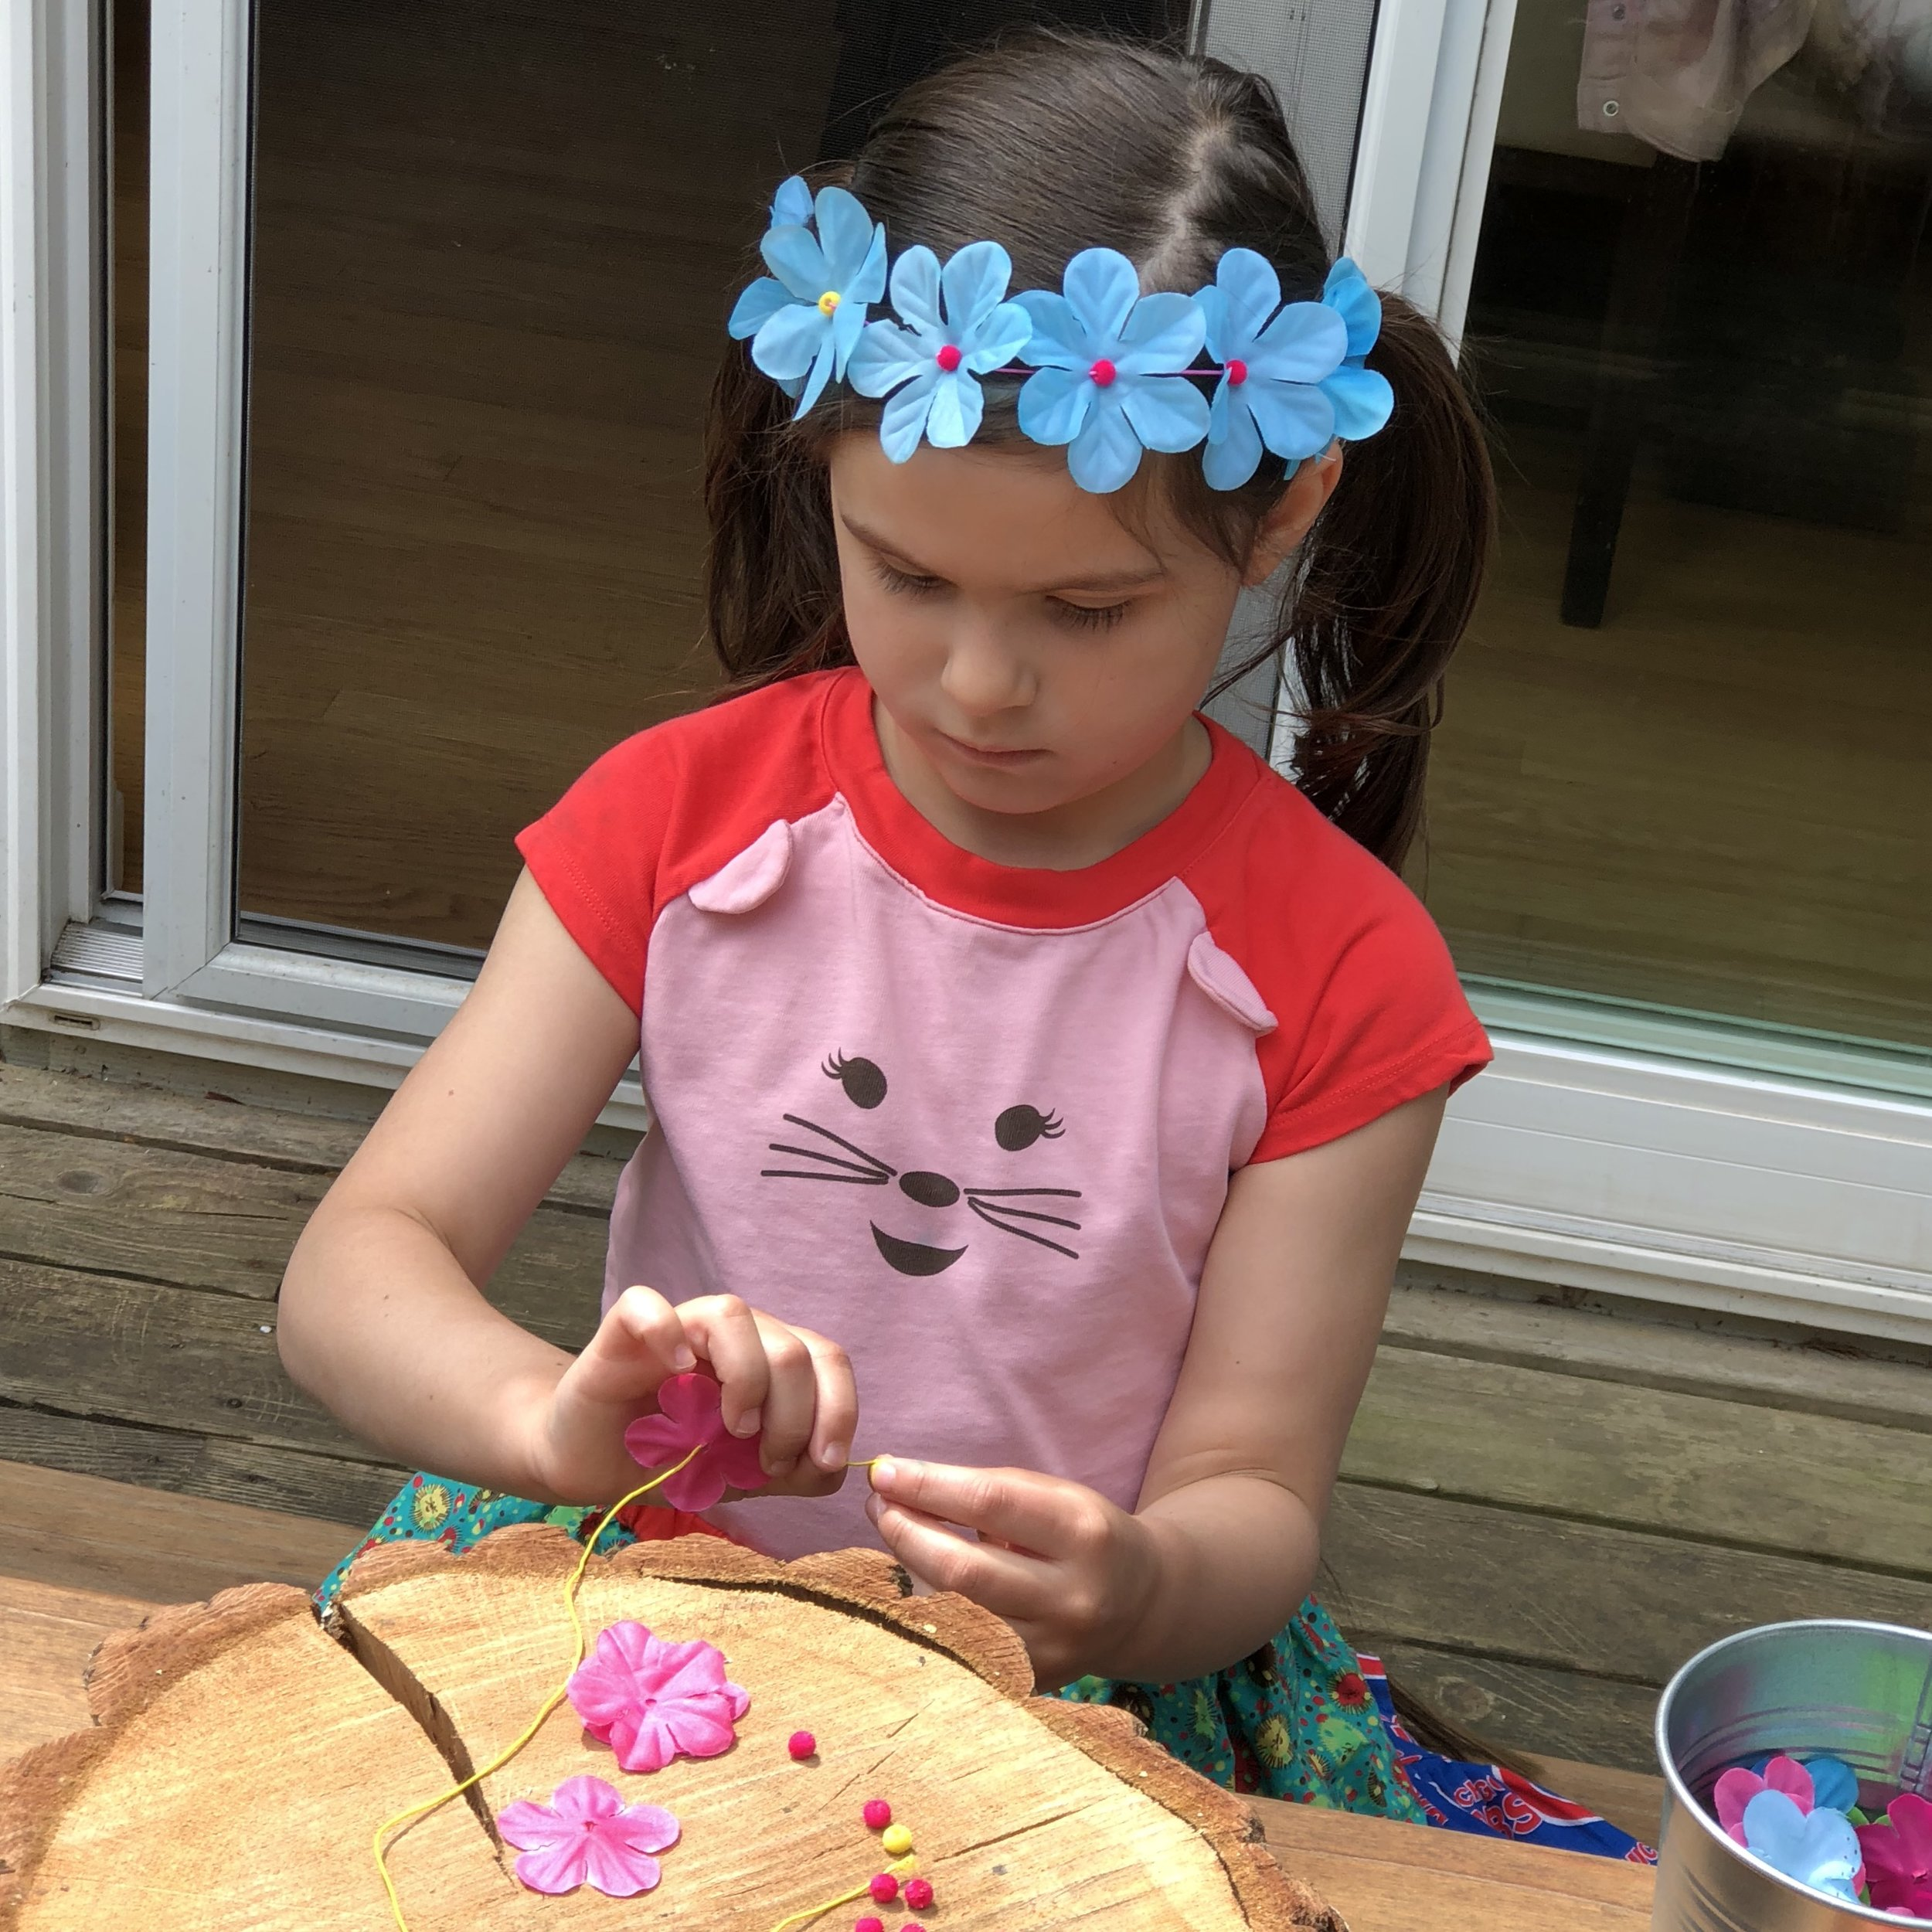 The kits include enough materials to make two flower crown for each girl - one for herself and one for her doll.